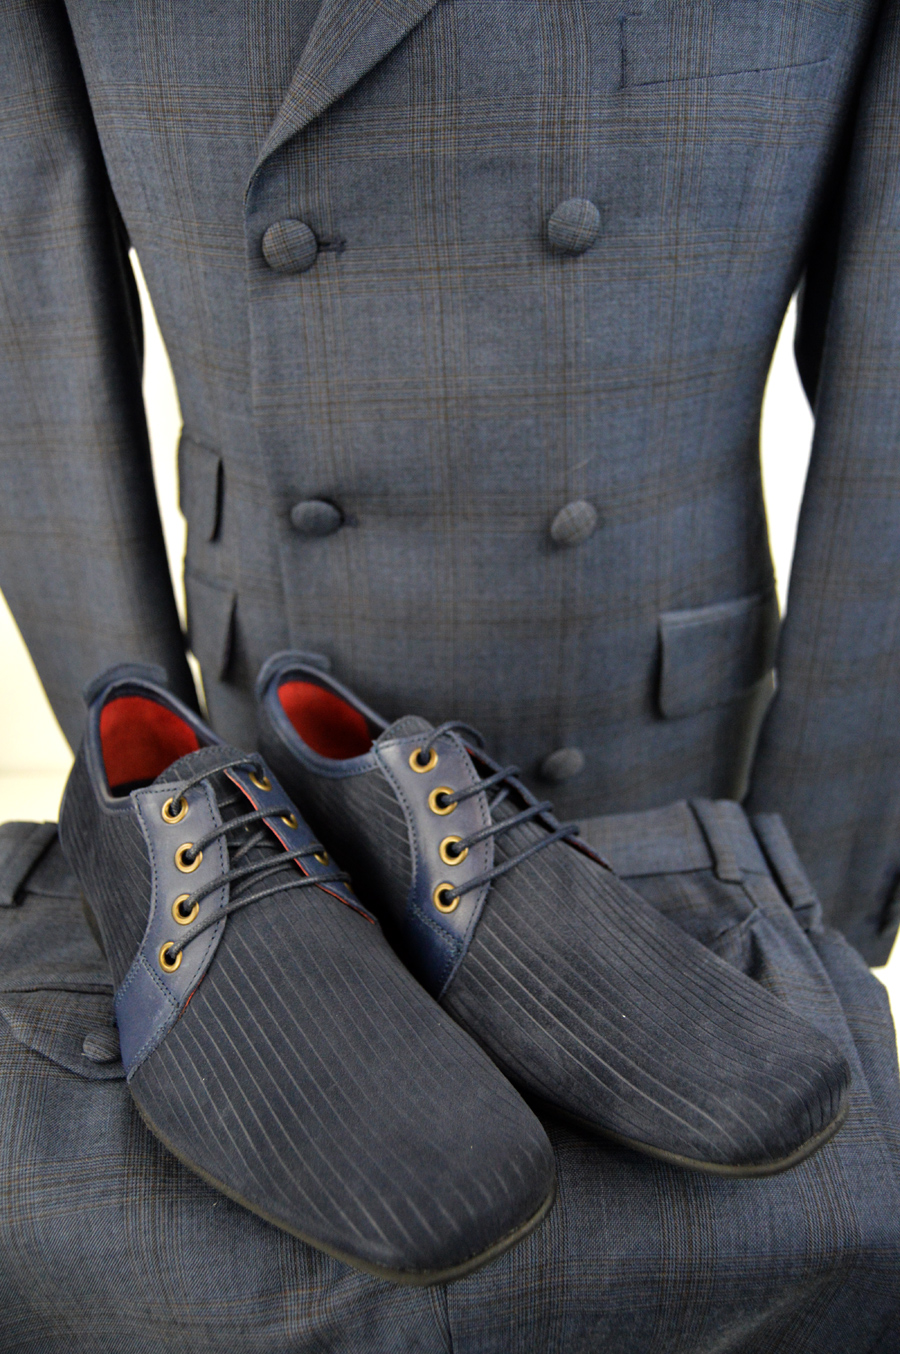 modshoes-exclusive-corded-shoes-with-mod-suit-from-adaptor-clothing-01